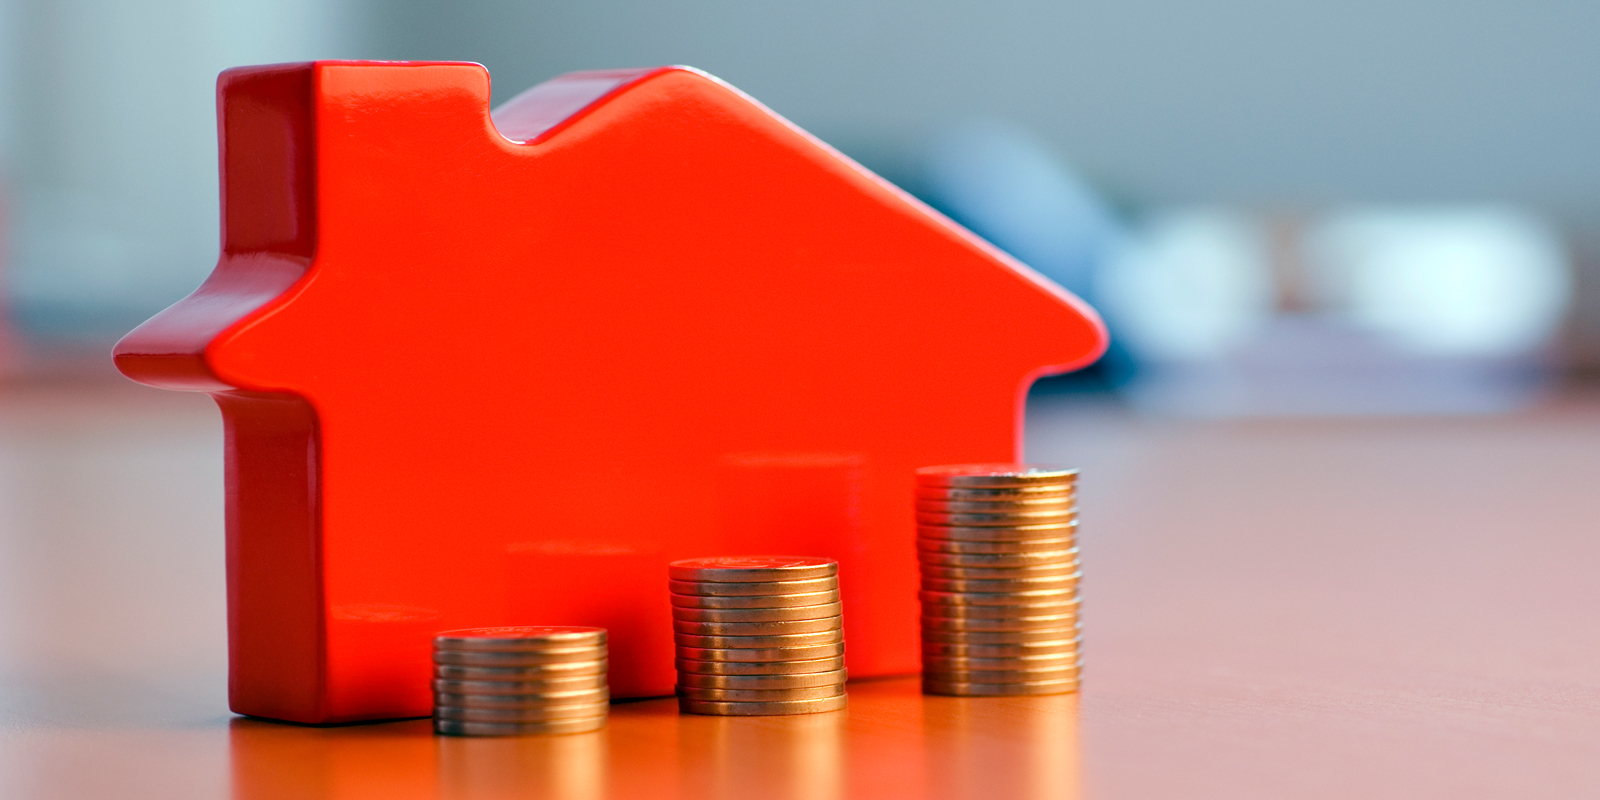 Imagery for High loan to income mortgages - if the cap fits…